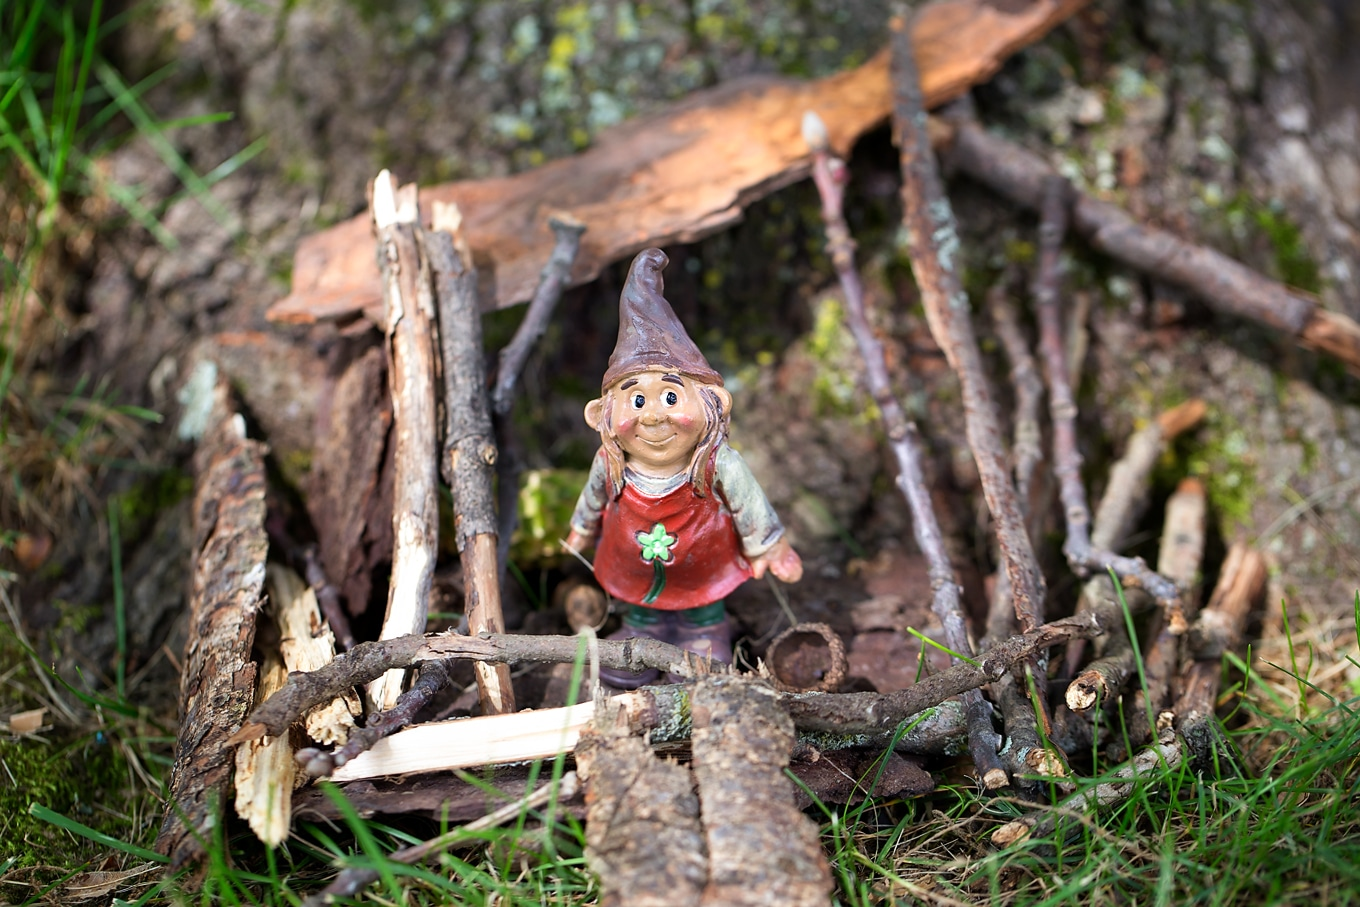 Gnome and Fairy Home Building on a Nature Walk